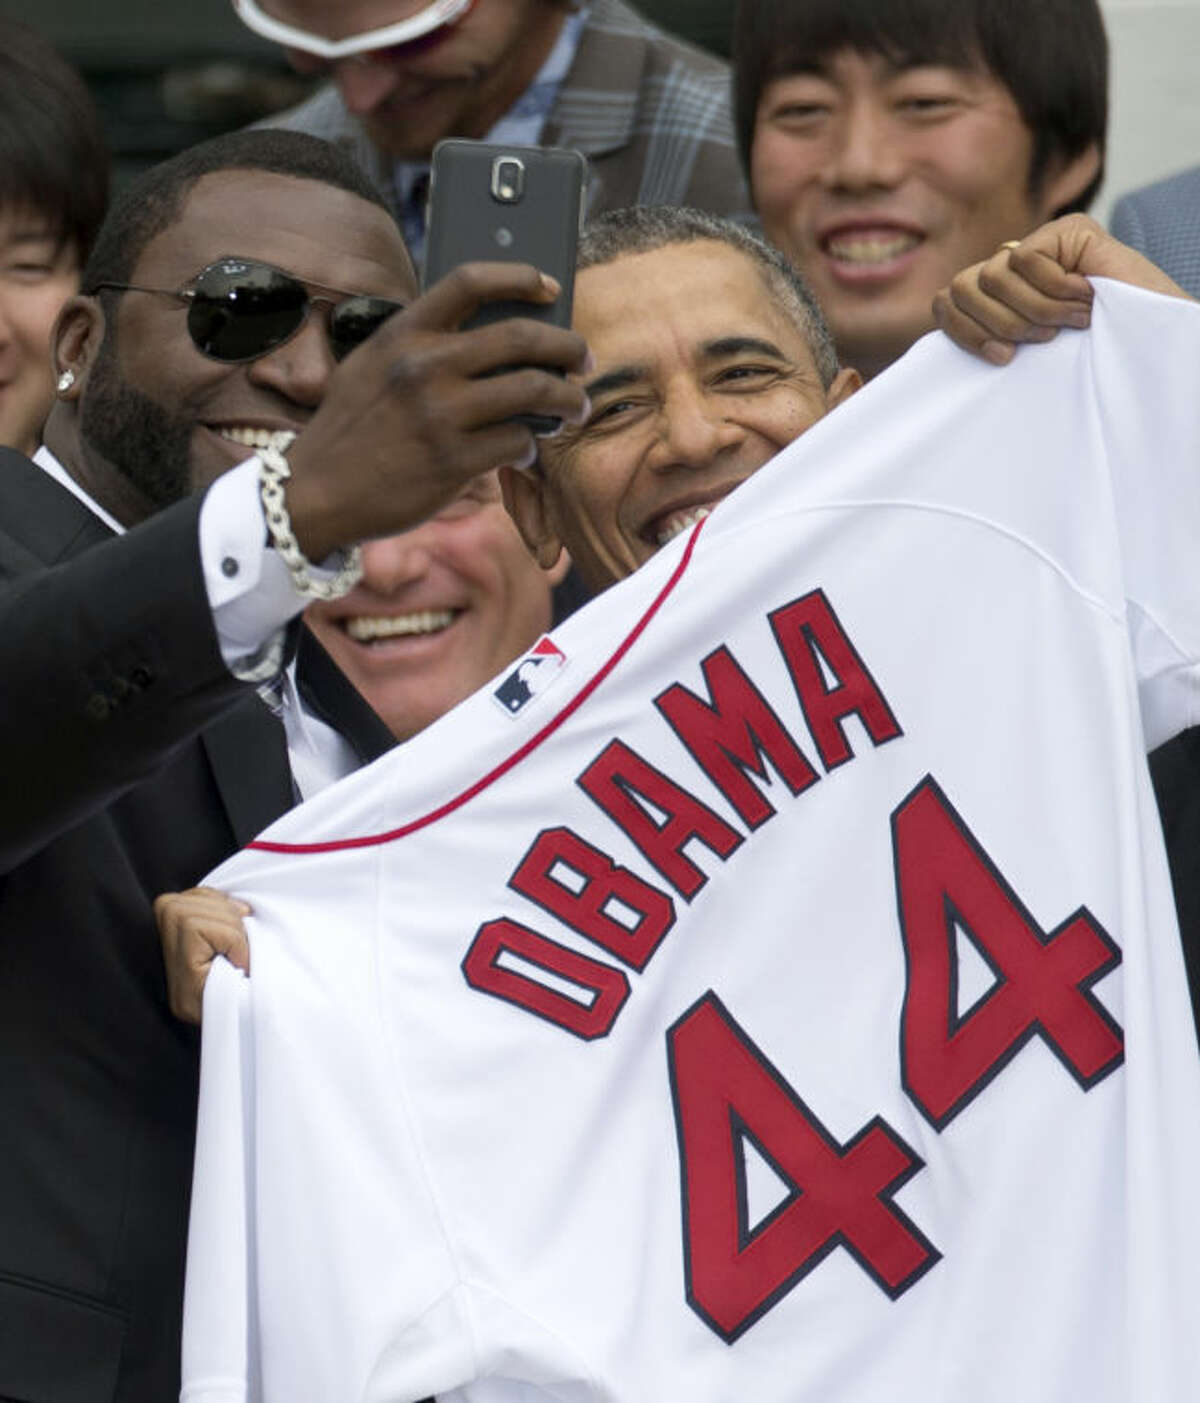 """Boston Red Sox designated hitter David """"Big Papi"""" Ortiz takes a selfie with President Barack Obama, holding a Boston Red Sox jersey presented to him, during a ceremony on the South Lawn of the White House in Washington, Tuesday, April 1, 2014, where the president honored the 2013 World Series baseball champion Boston Red Sox. In the background is pitcher Koji Uehara, upper right. (AP Photo/Carolyn Kaster)"""